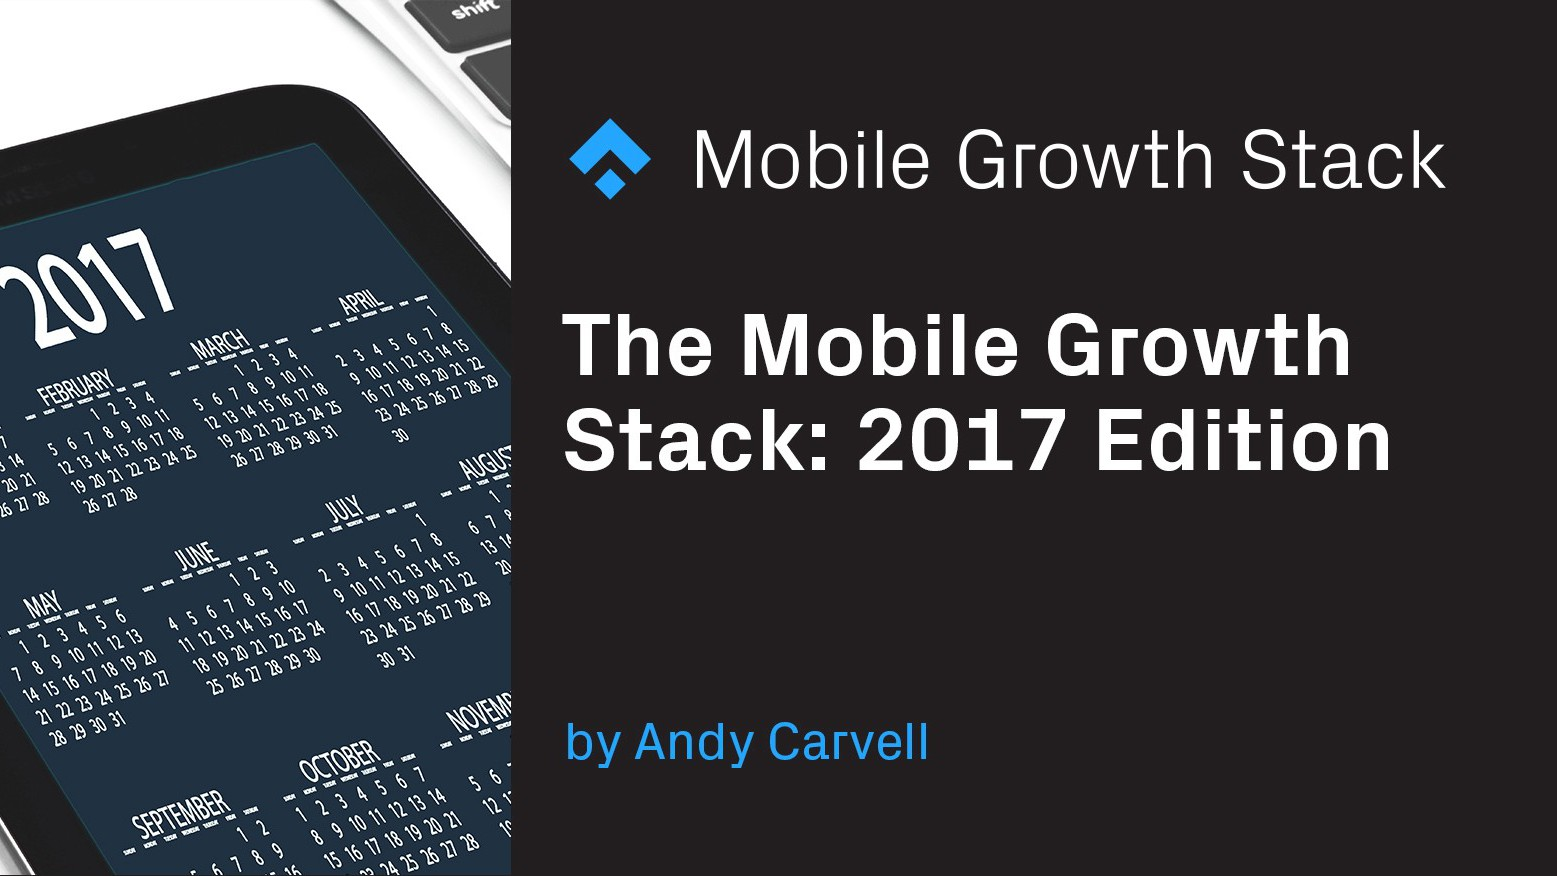 mobile growth stack 2017 edition